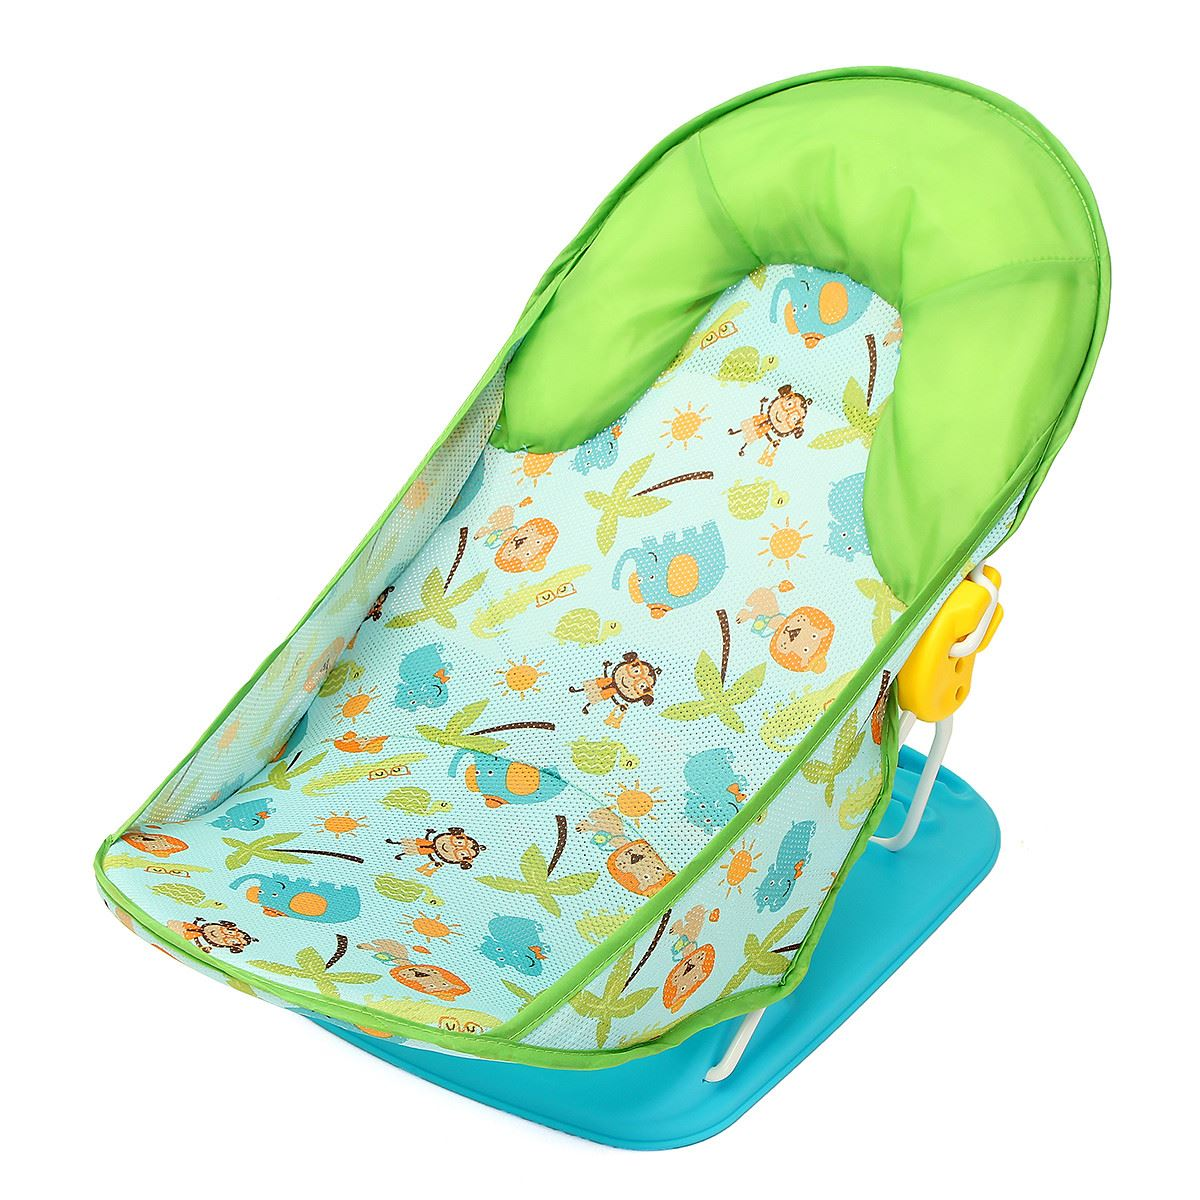 Newborn Infant Baby Safety Bath Tub Baby Toddler Bath Shower Support Seat Chair Soft Comfort Bath Supplies Foldable Washable<br>